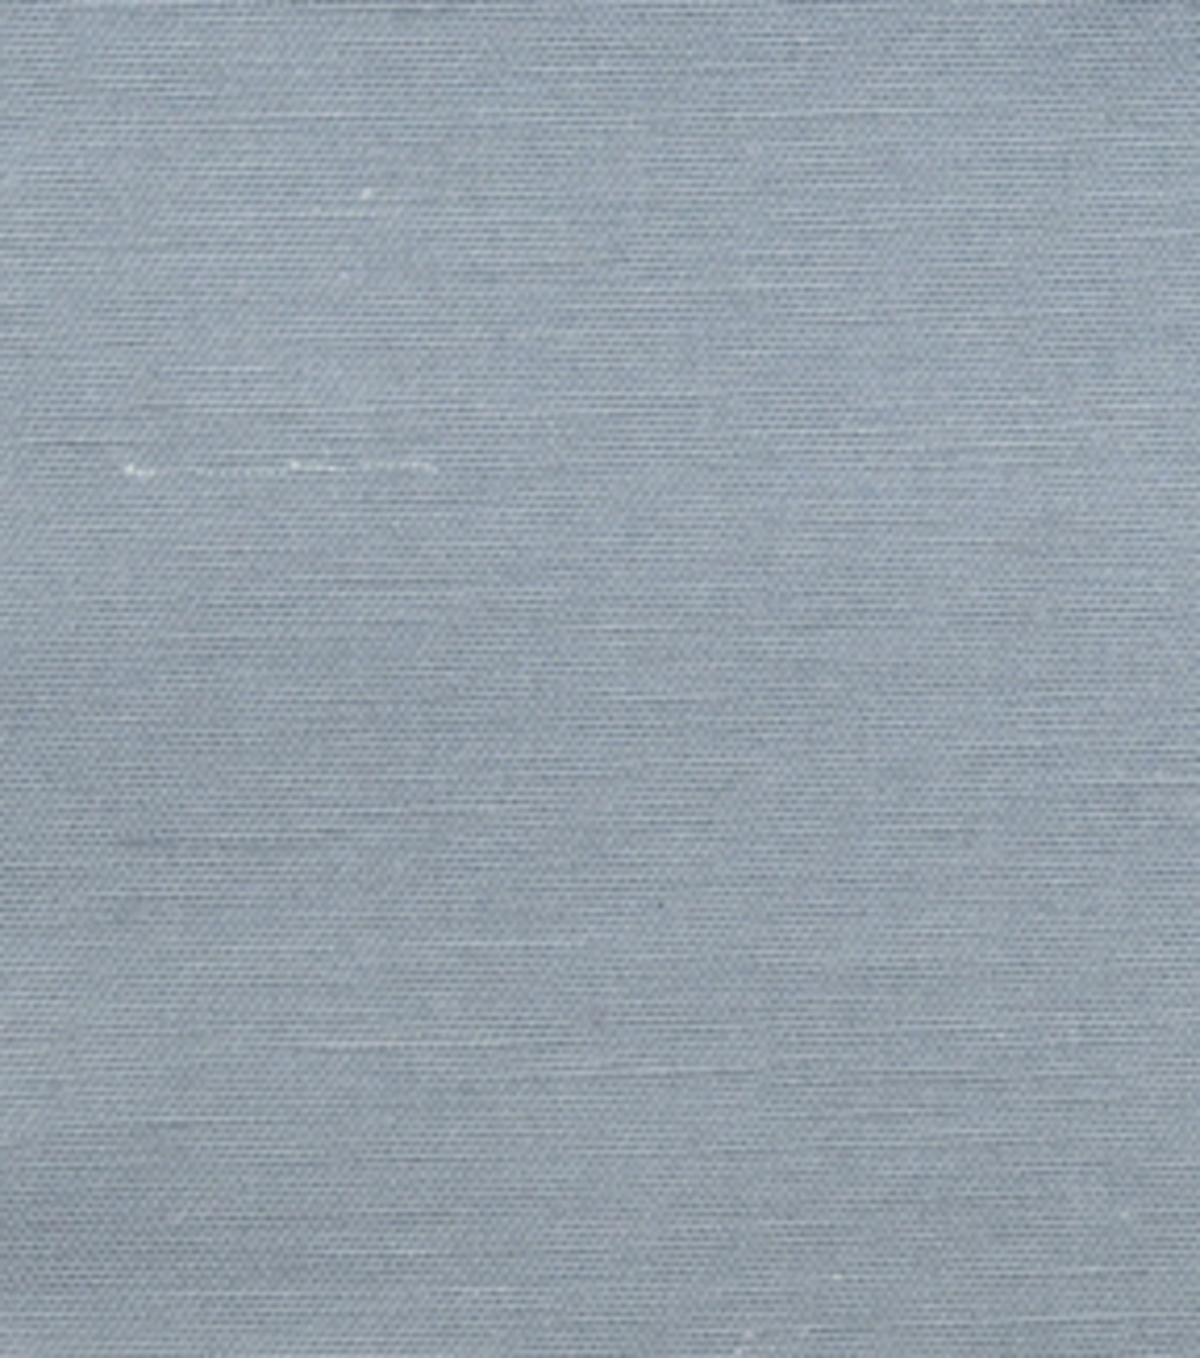 Home Decor 8\u0022x8\u0022 Fabric Swatch-Signature Series Sonoma Linen-Cotton Slate